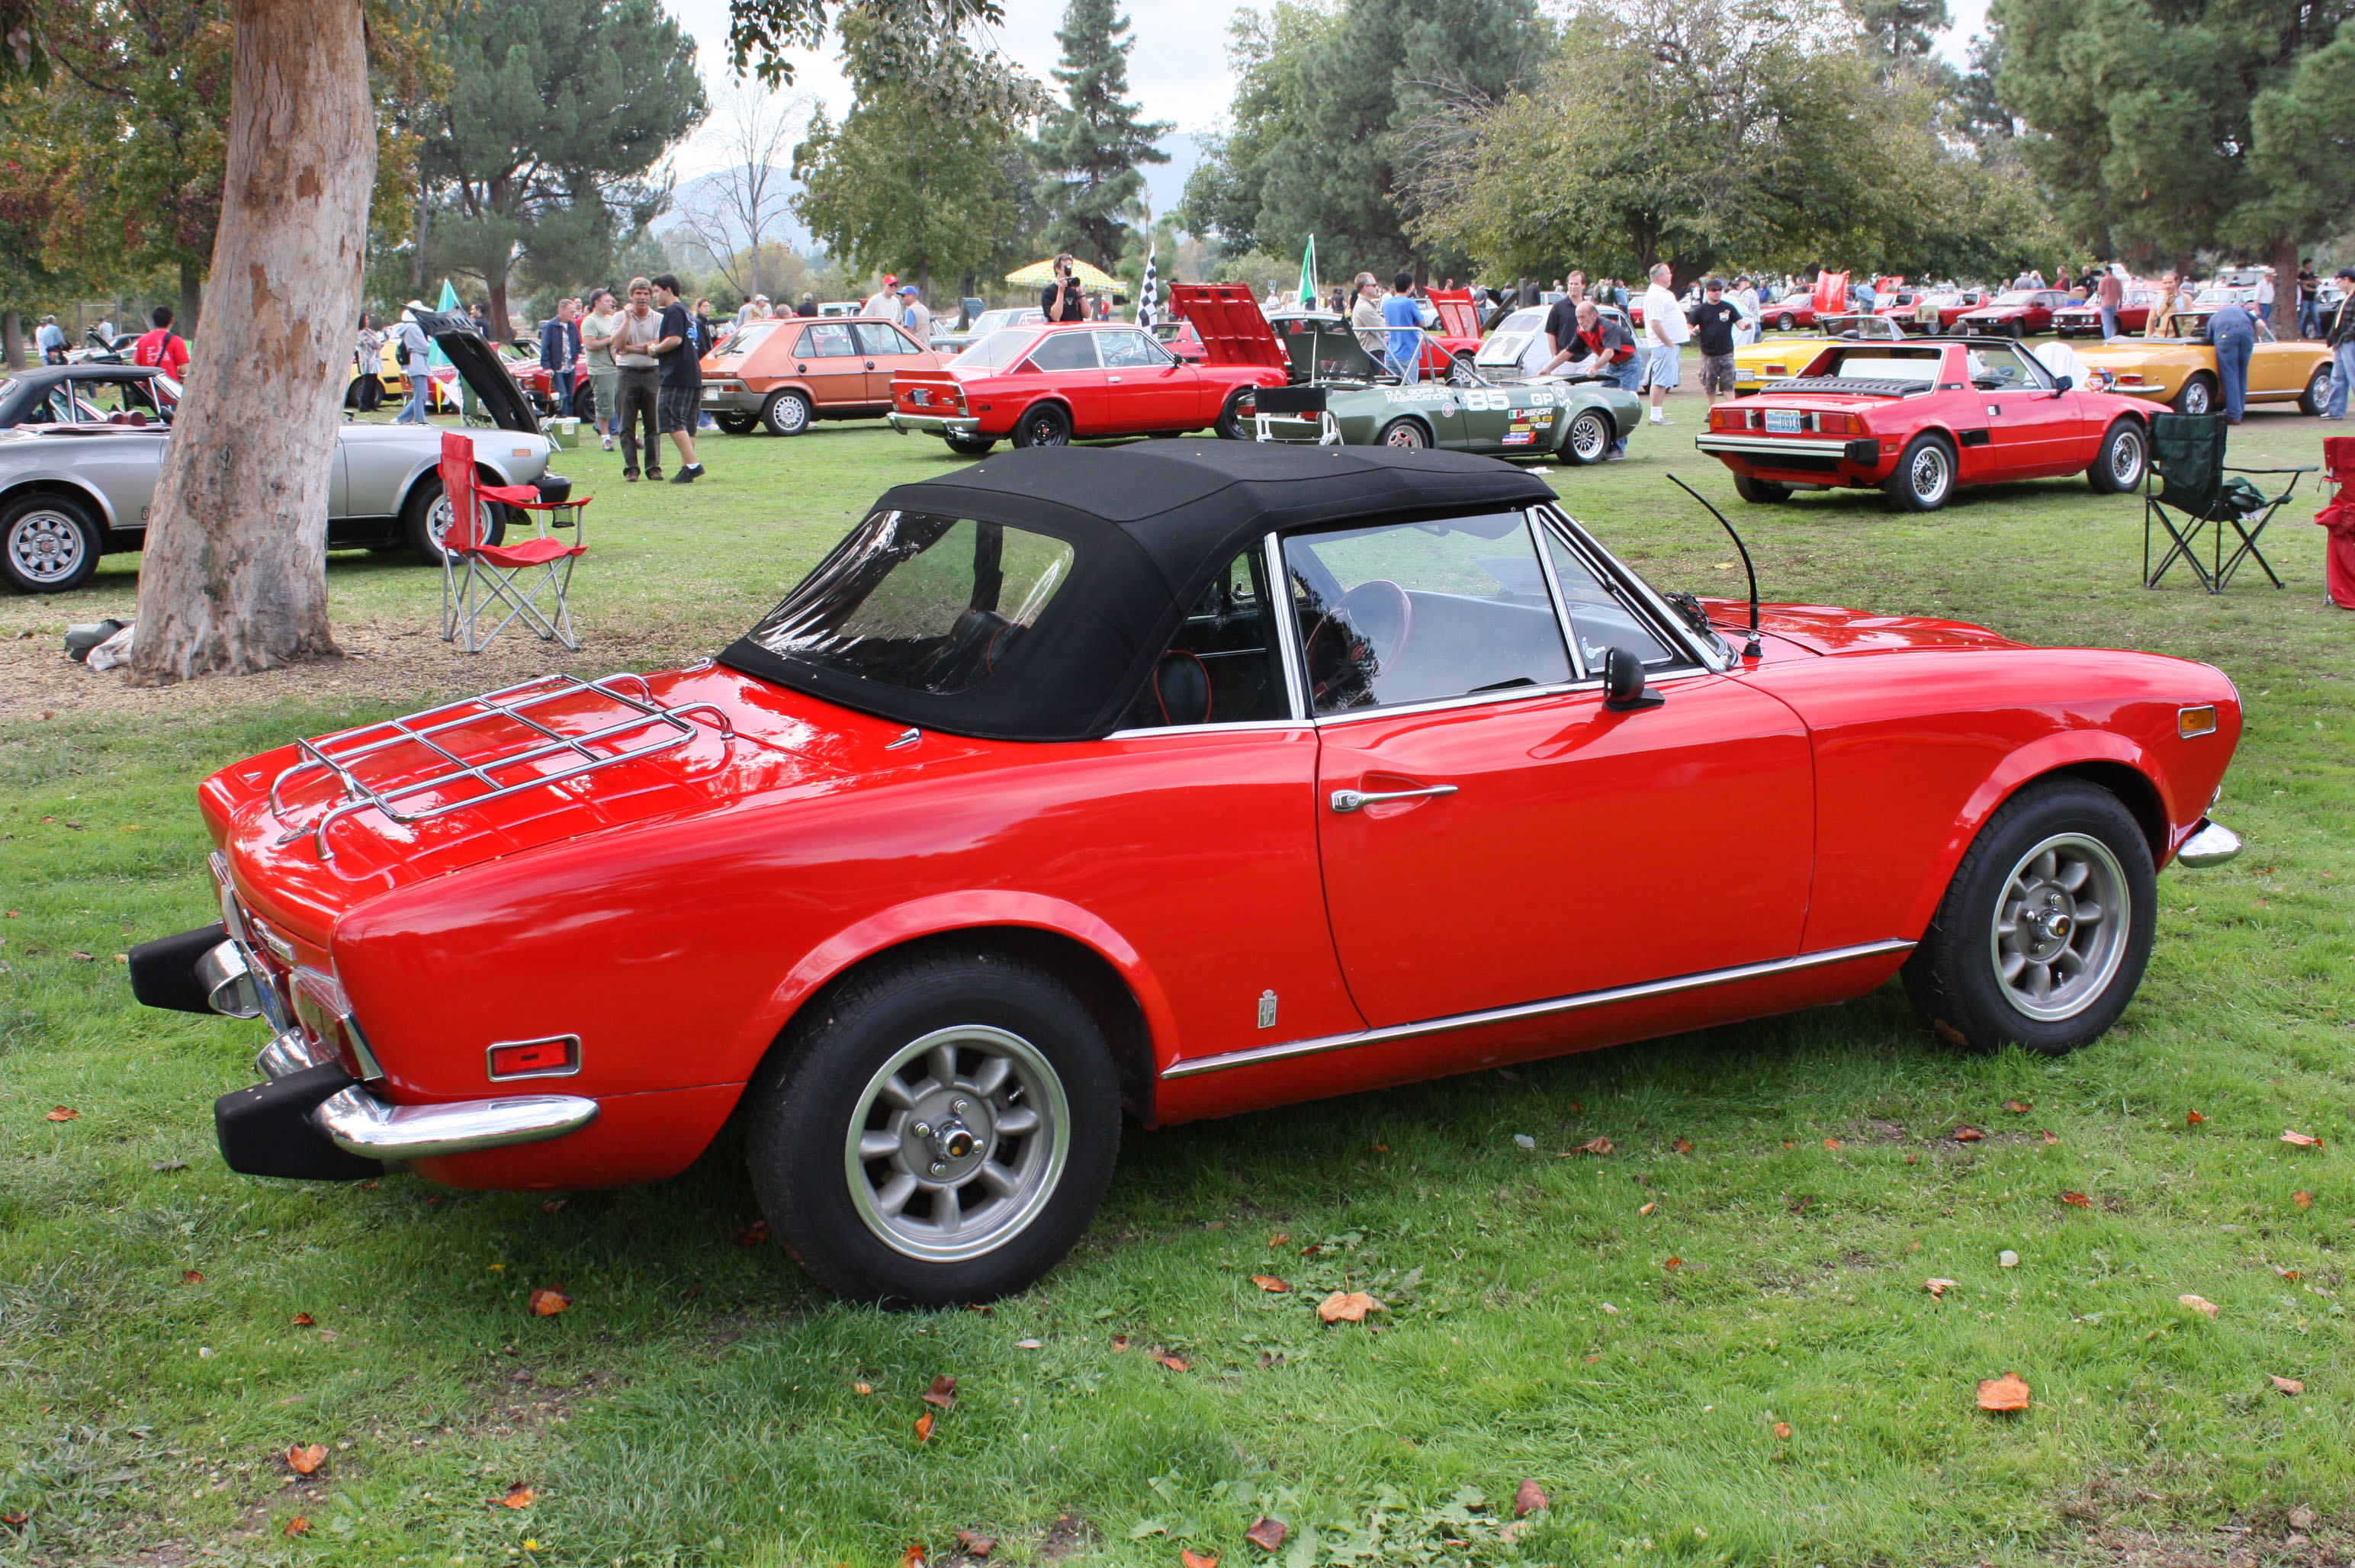 1974 Fiat 124 Photos, Informations, Articles - BestCarMag.com